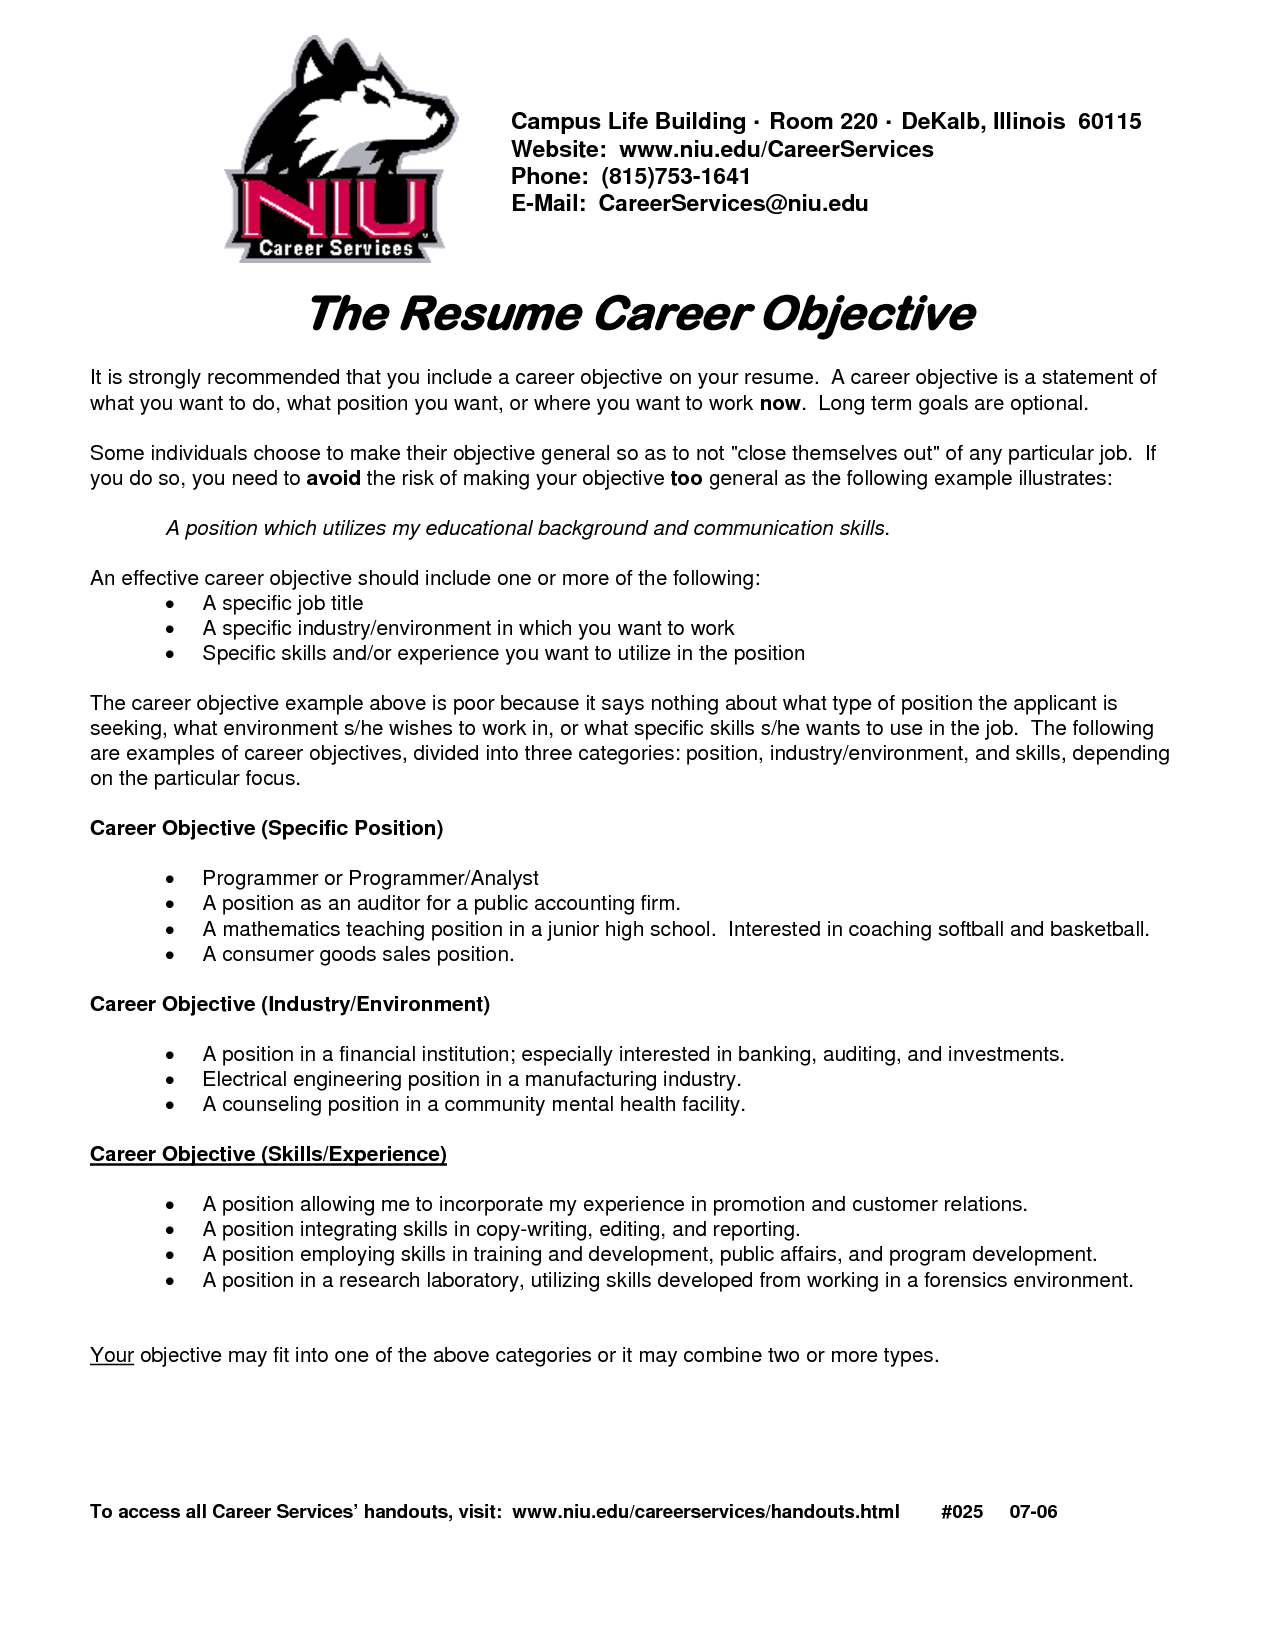 Example of objectives on a resume